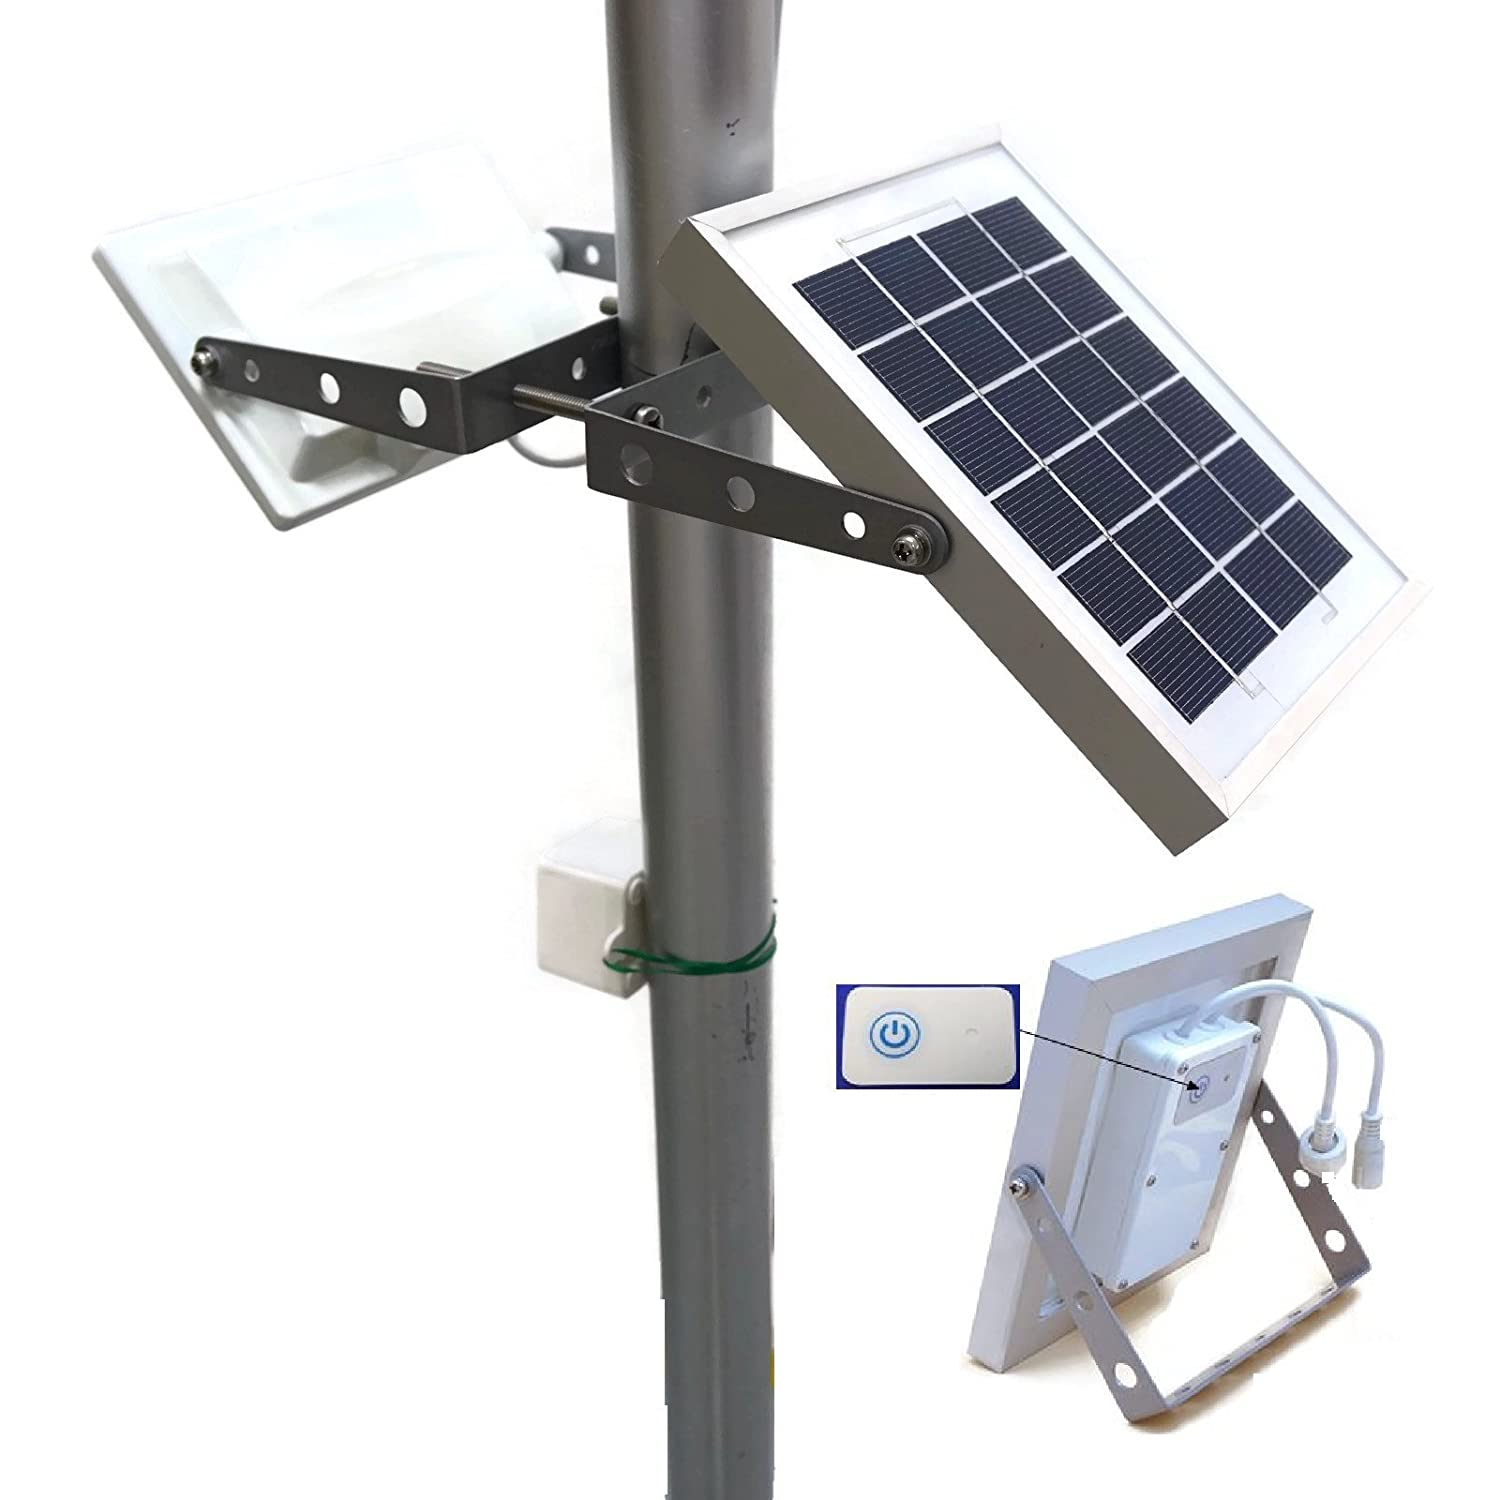 Solar Pole Lighting Part - 46: GUARDIAN 580X Solar Street Light 730 Lumen Full Brightness, With Standalone  Guardian PIR Motion Sensor And Lithium Battery, 3 Lighting Modes - -  Amazon.com